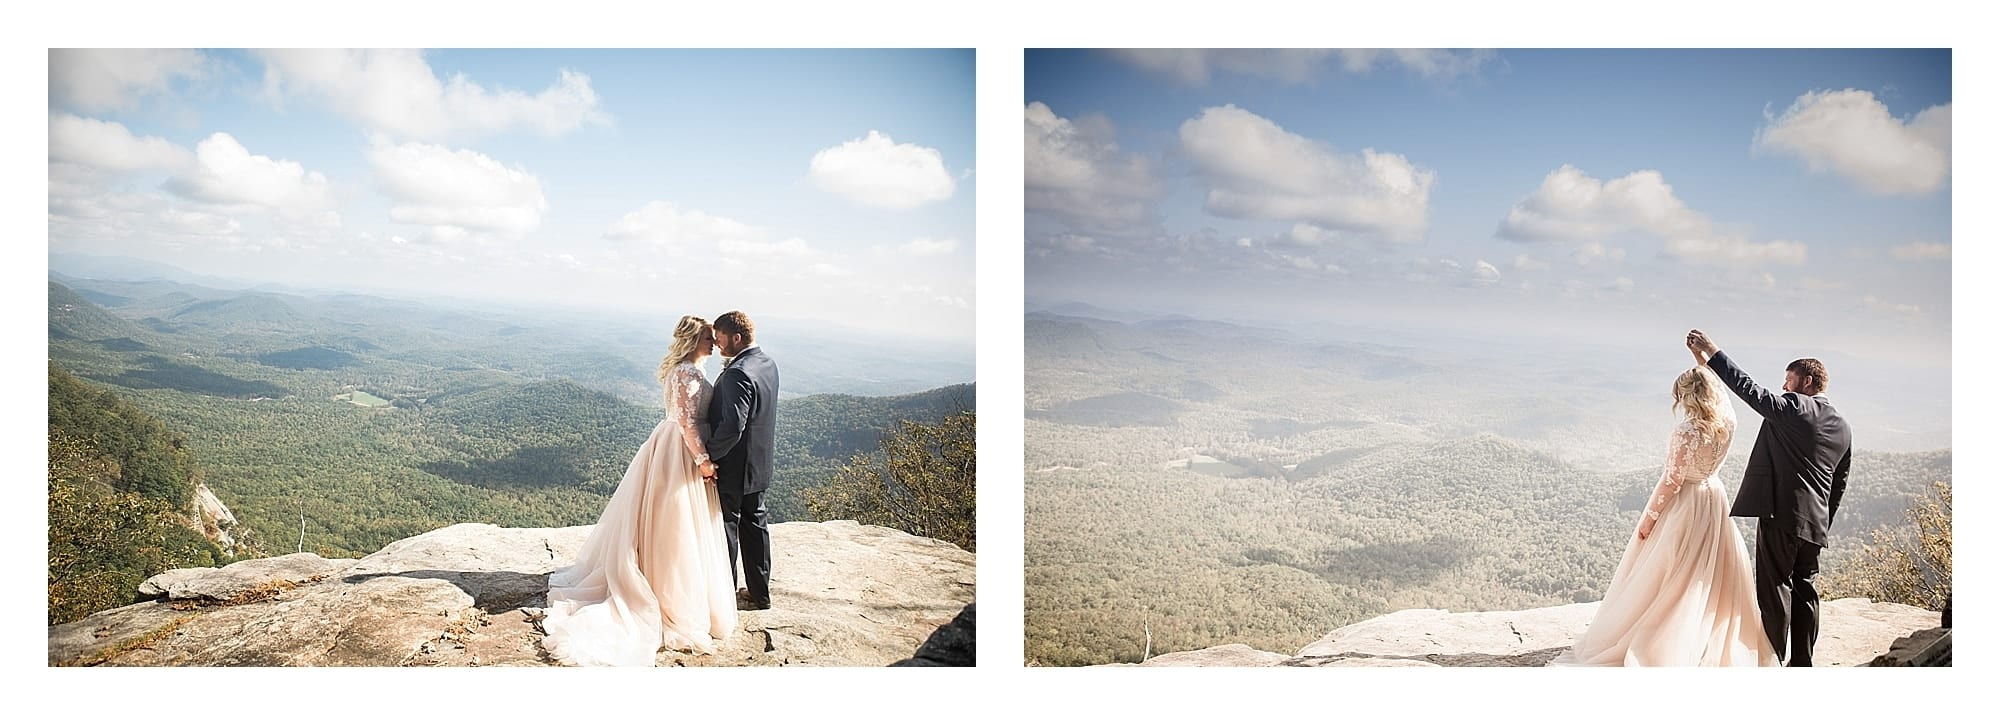 Bride and groom overlooking mountain view Asheville